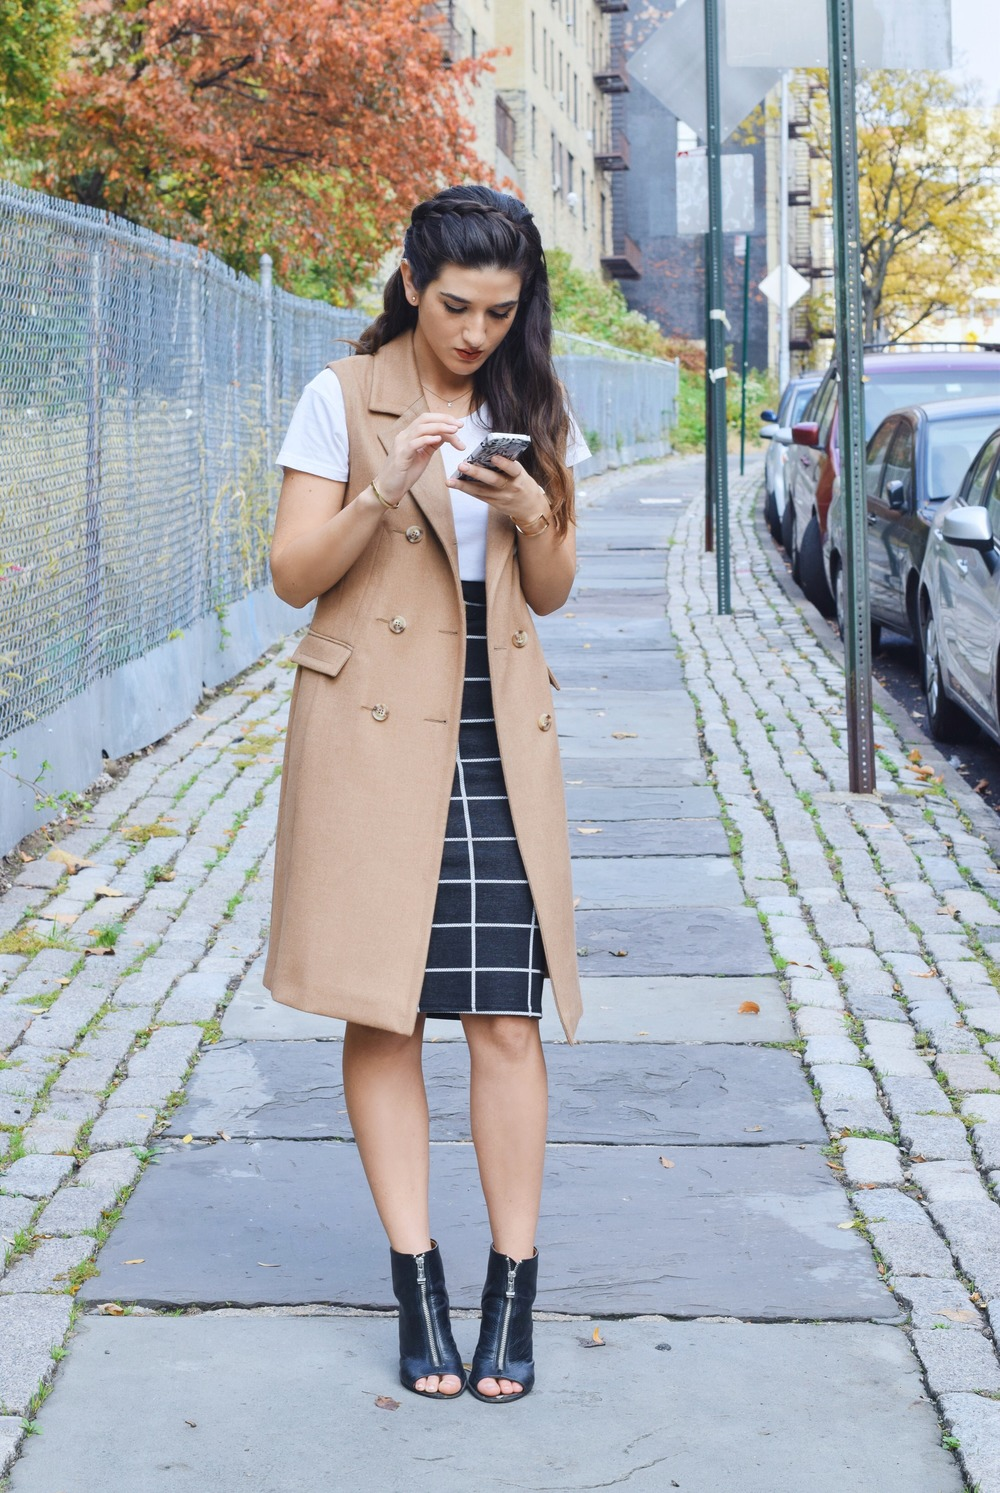 Sleeveless Coat Windowpane Skirt Oasis Louboutins & Love Fashion Blog Esther Santer NYC Street Style Blogger Vest Outfit OOTD  Braid Inspo Inspiration White Tee Windowpane Skirt Gold Jewelry Cuff Bracelet Shoes Black Booties Nordstrom Trendy Girl.jpg